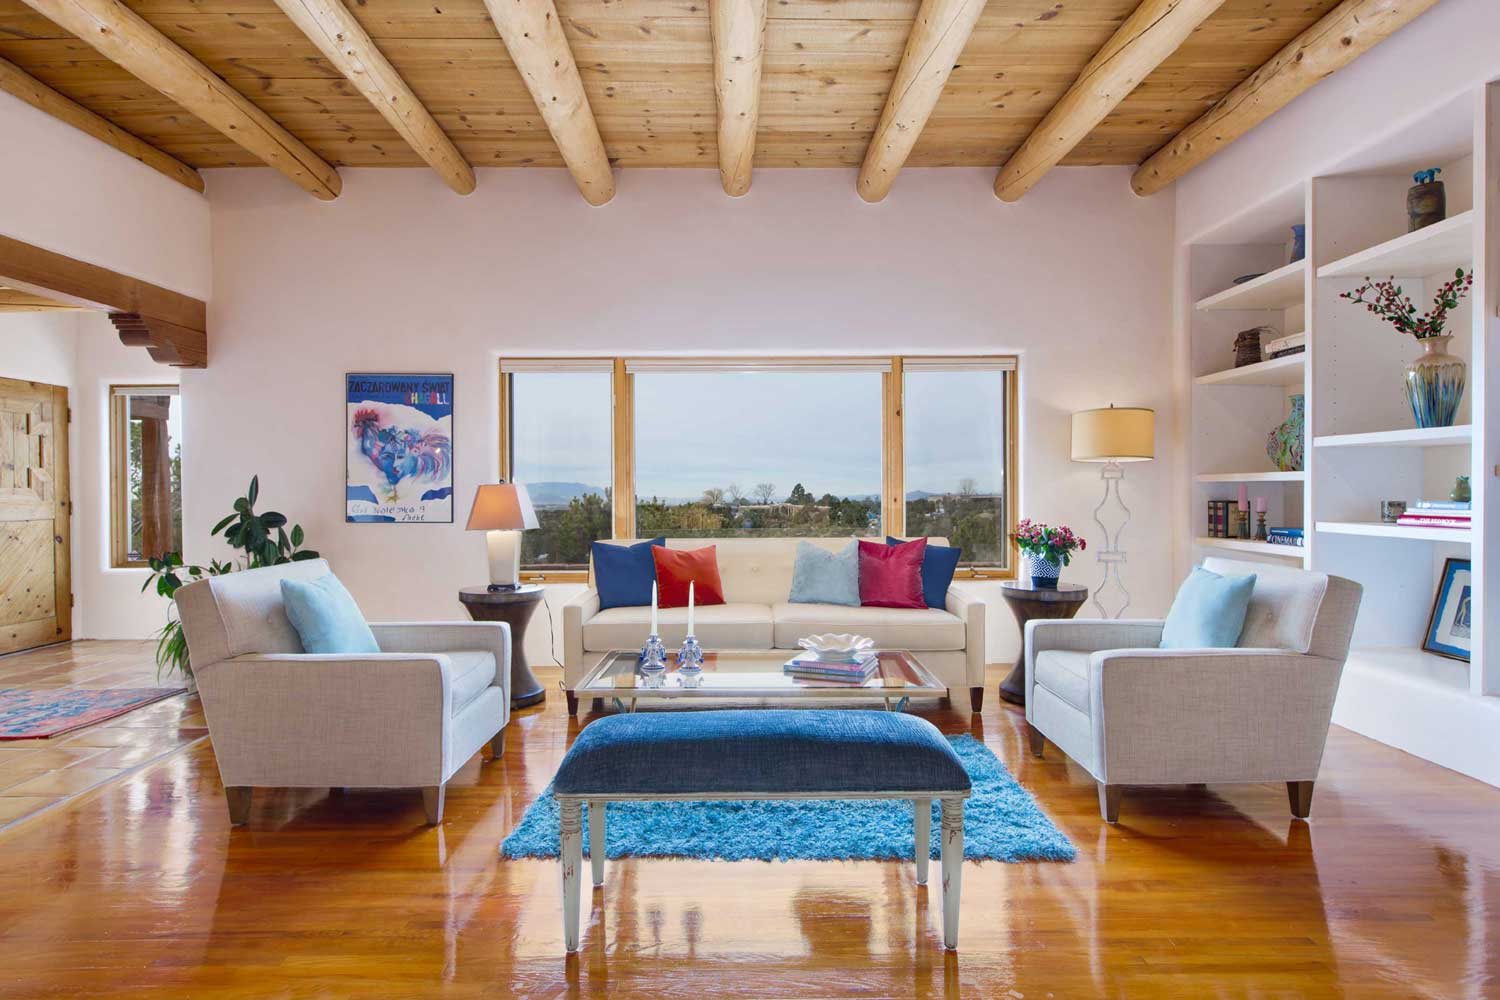 <b>Santa Fe, New Mexico</b><br/><i>4 Bedrooms, 4,725 sq. ft.</i><br/>Pueblo-style estate with pool and city views